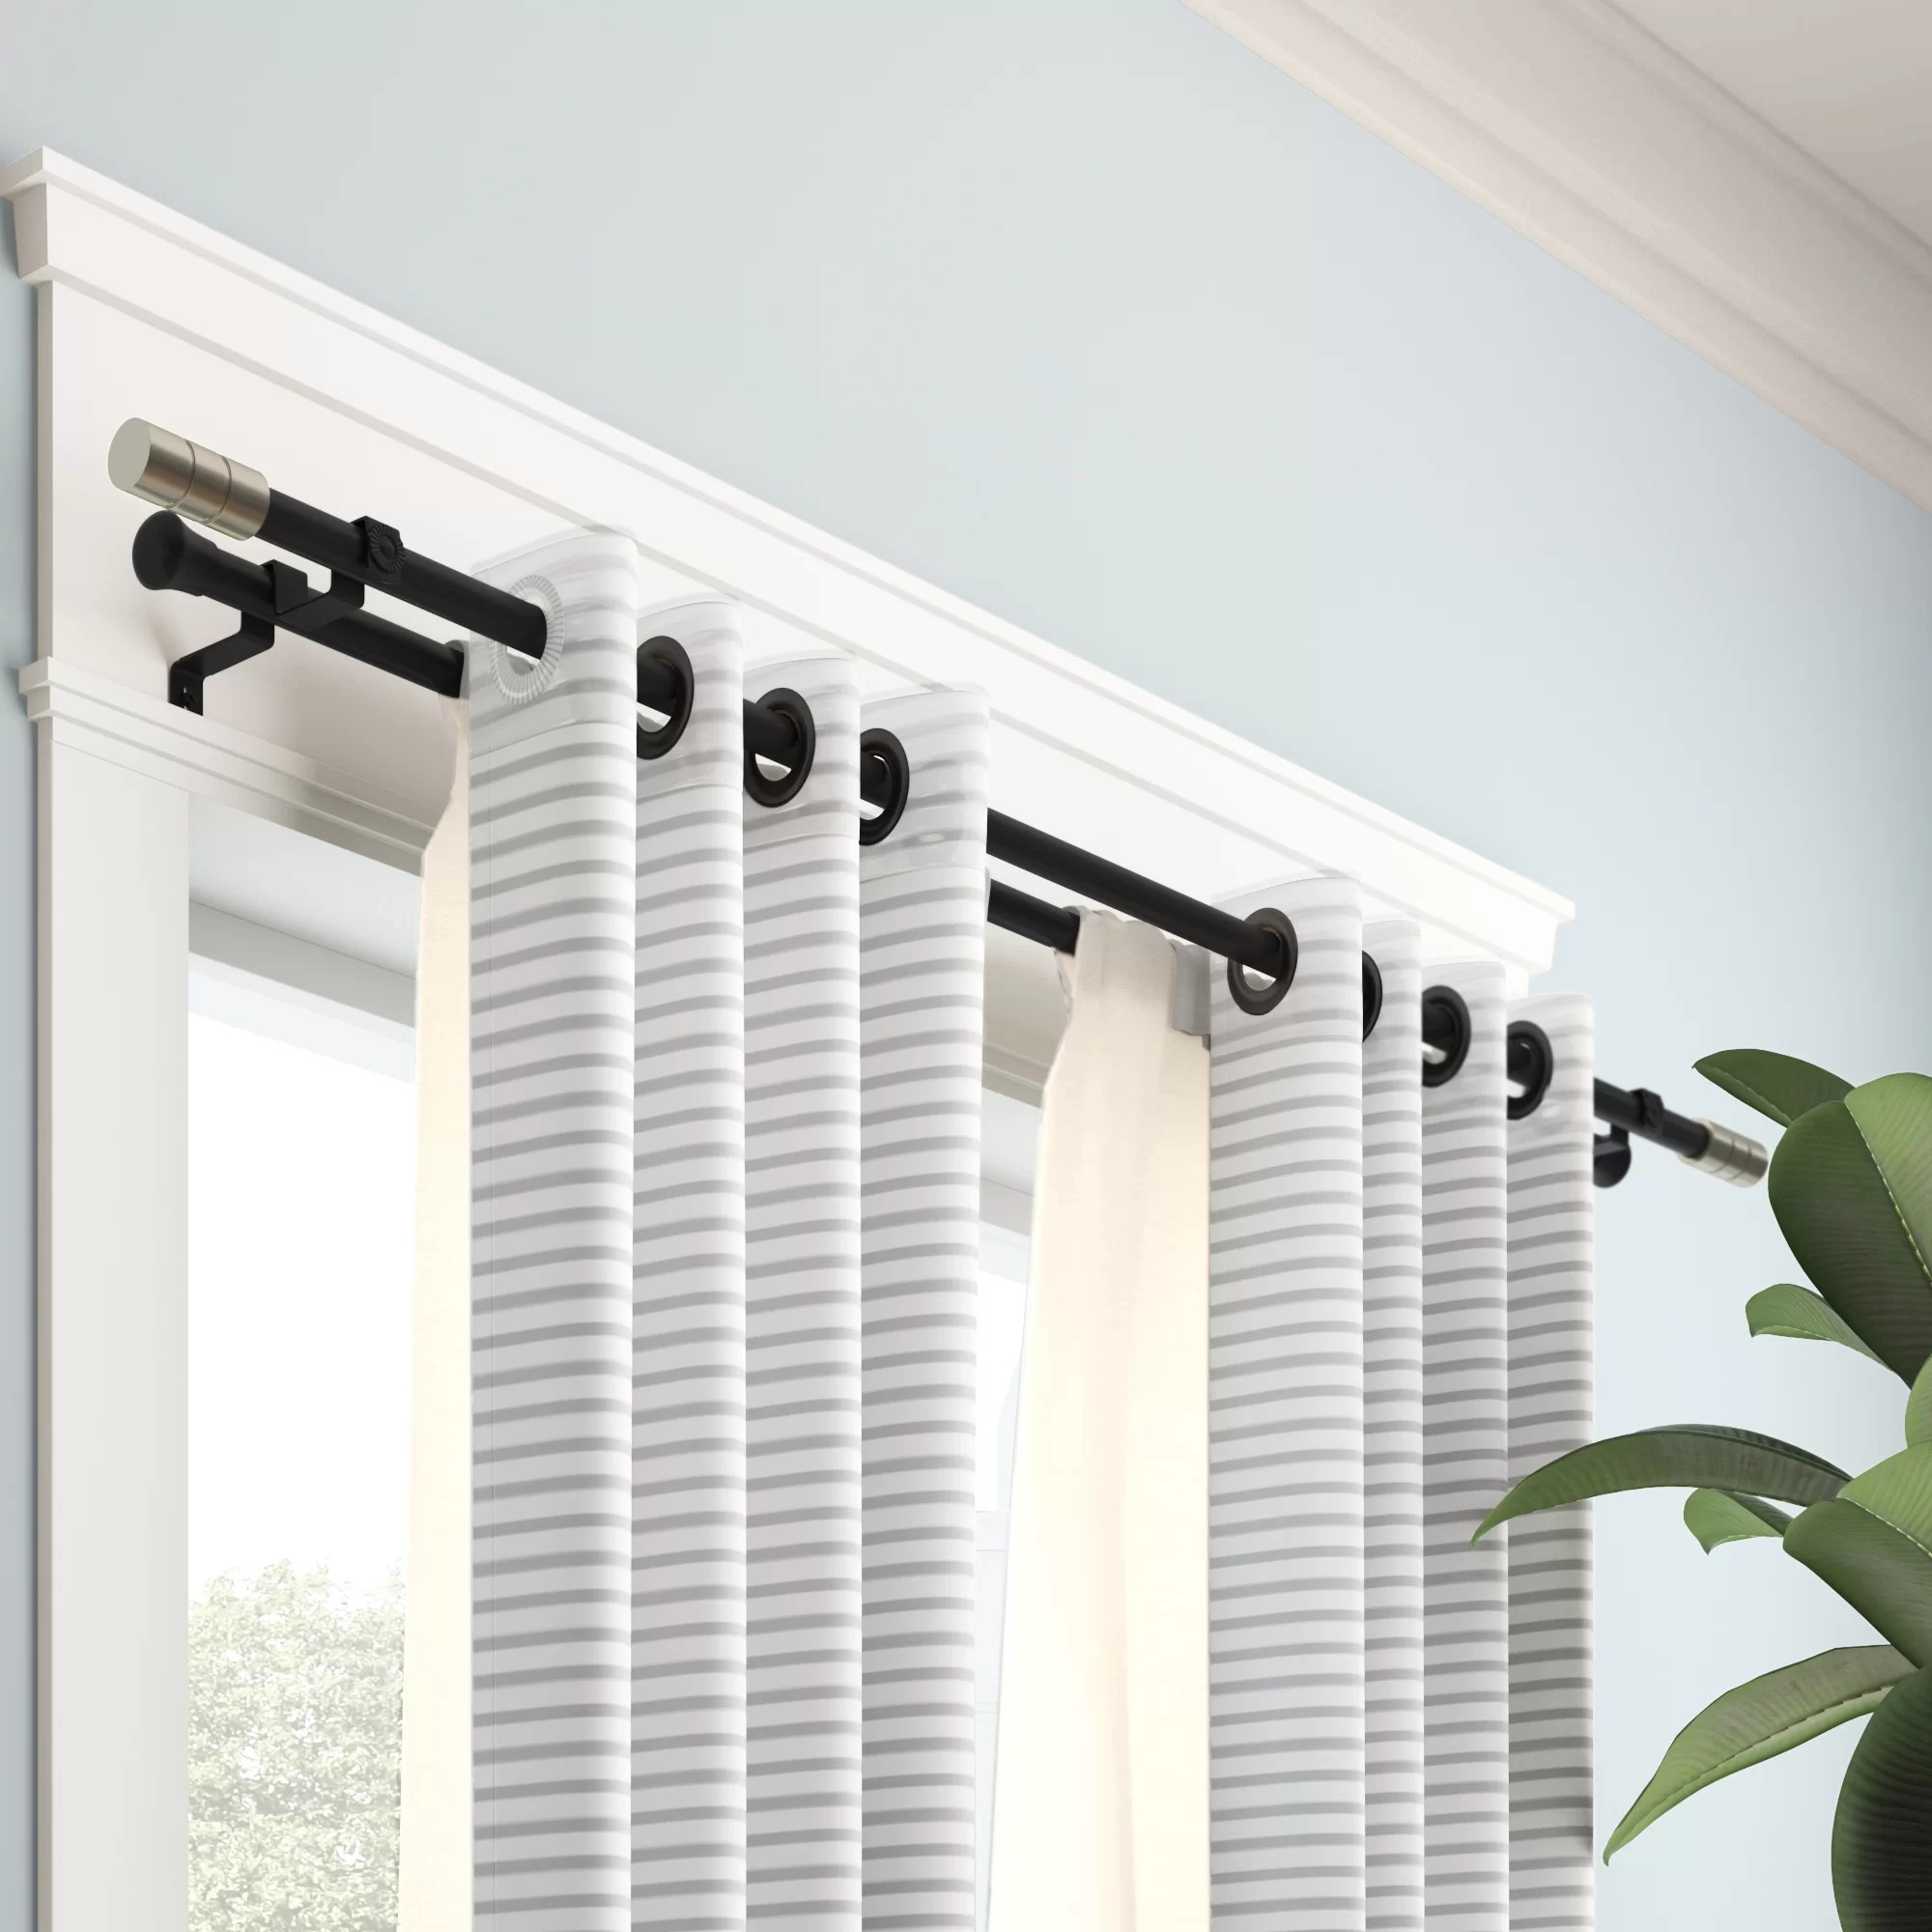 white 28 48 bali blinds double curtain rod